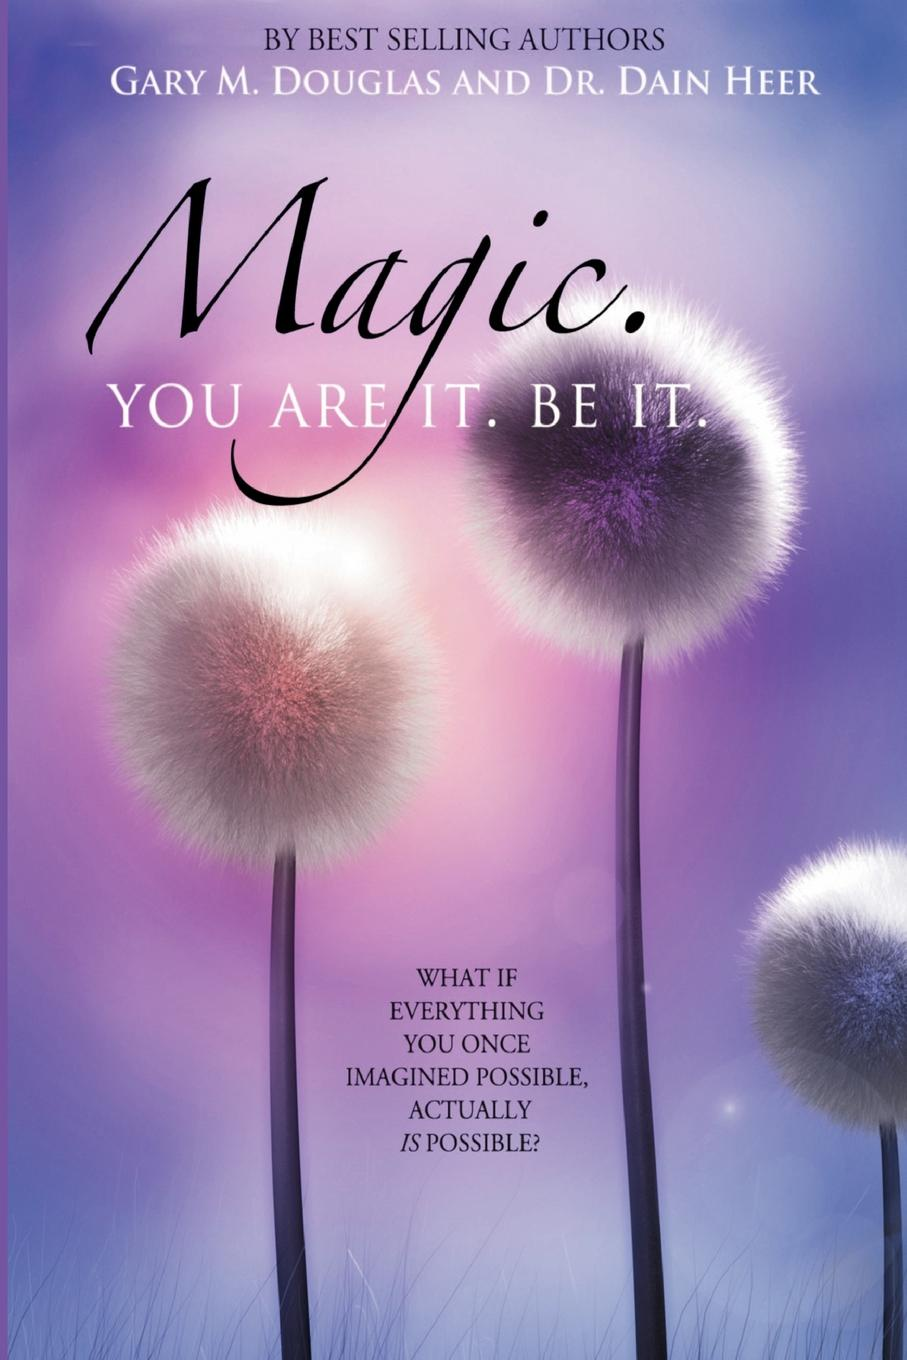 Dr. Dain Heer, Gary M. Douglas Magic. You Are It. Be It. gary m douglas dr dain heer the home of infinite possibilities